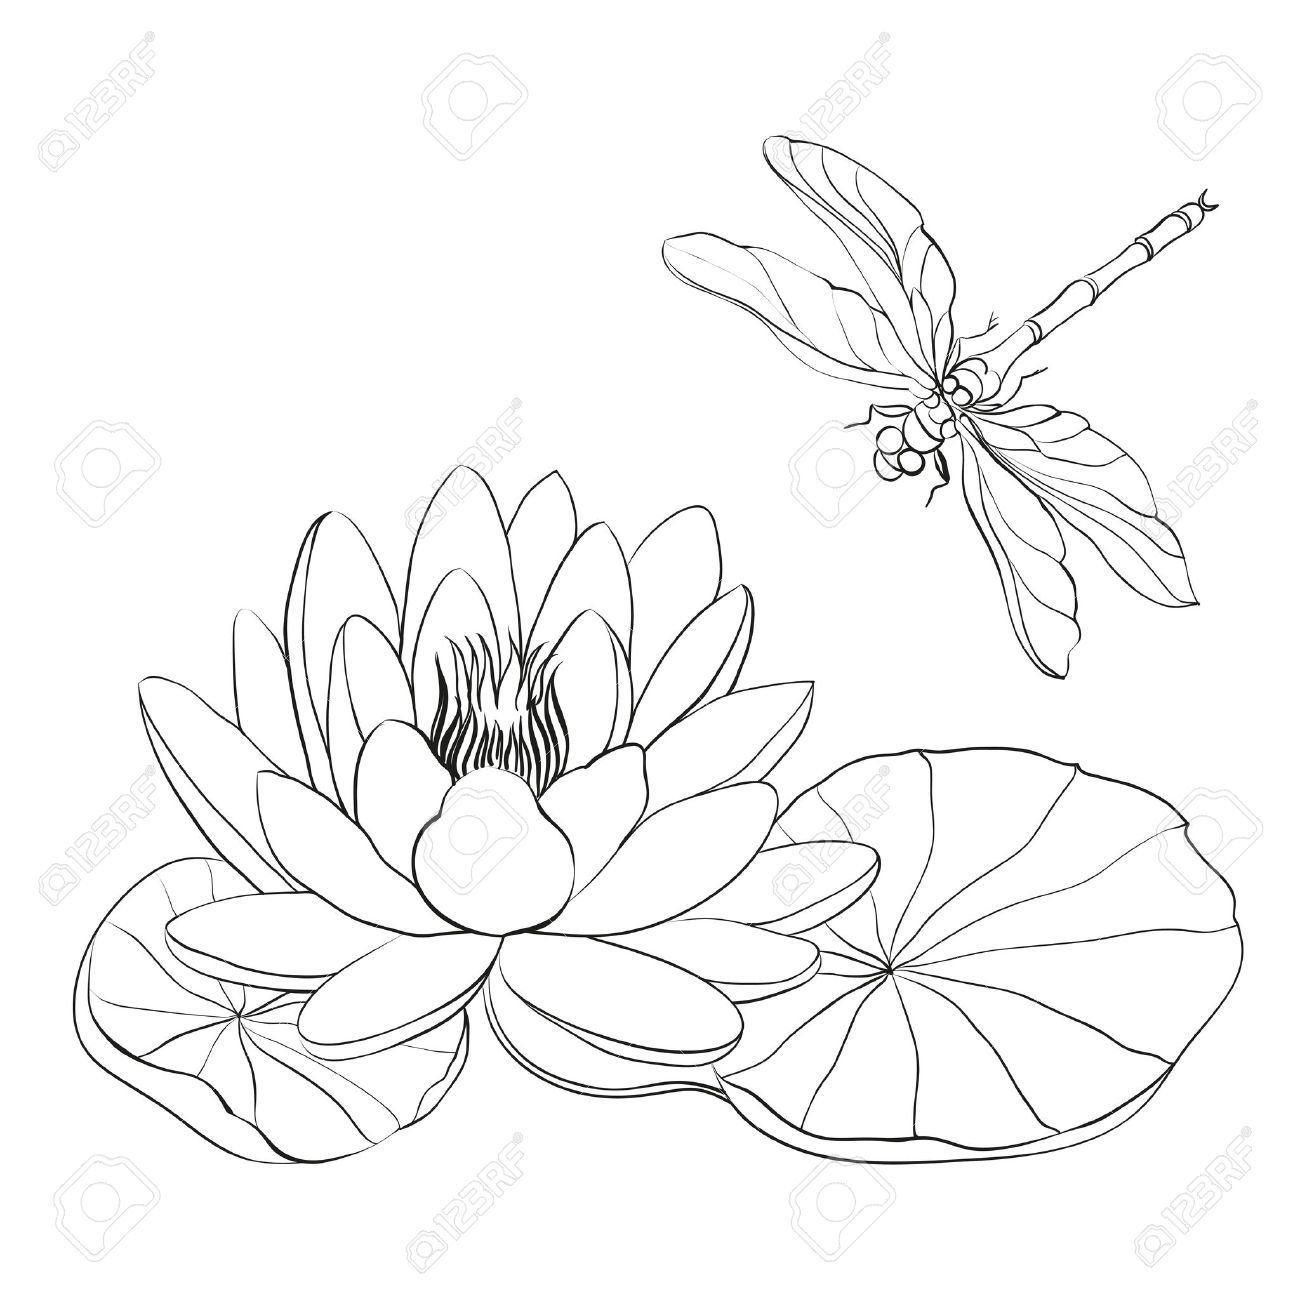 Lily Cliparts Stock Vector And Royalty Free Lily Illustrations Blumenzeichnung Libellen Kunst Libellen Zeichnung